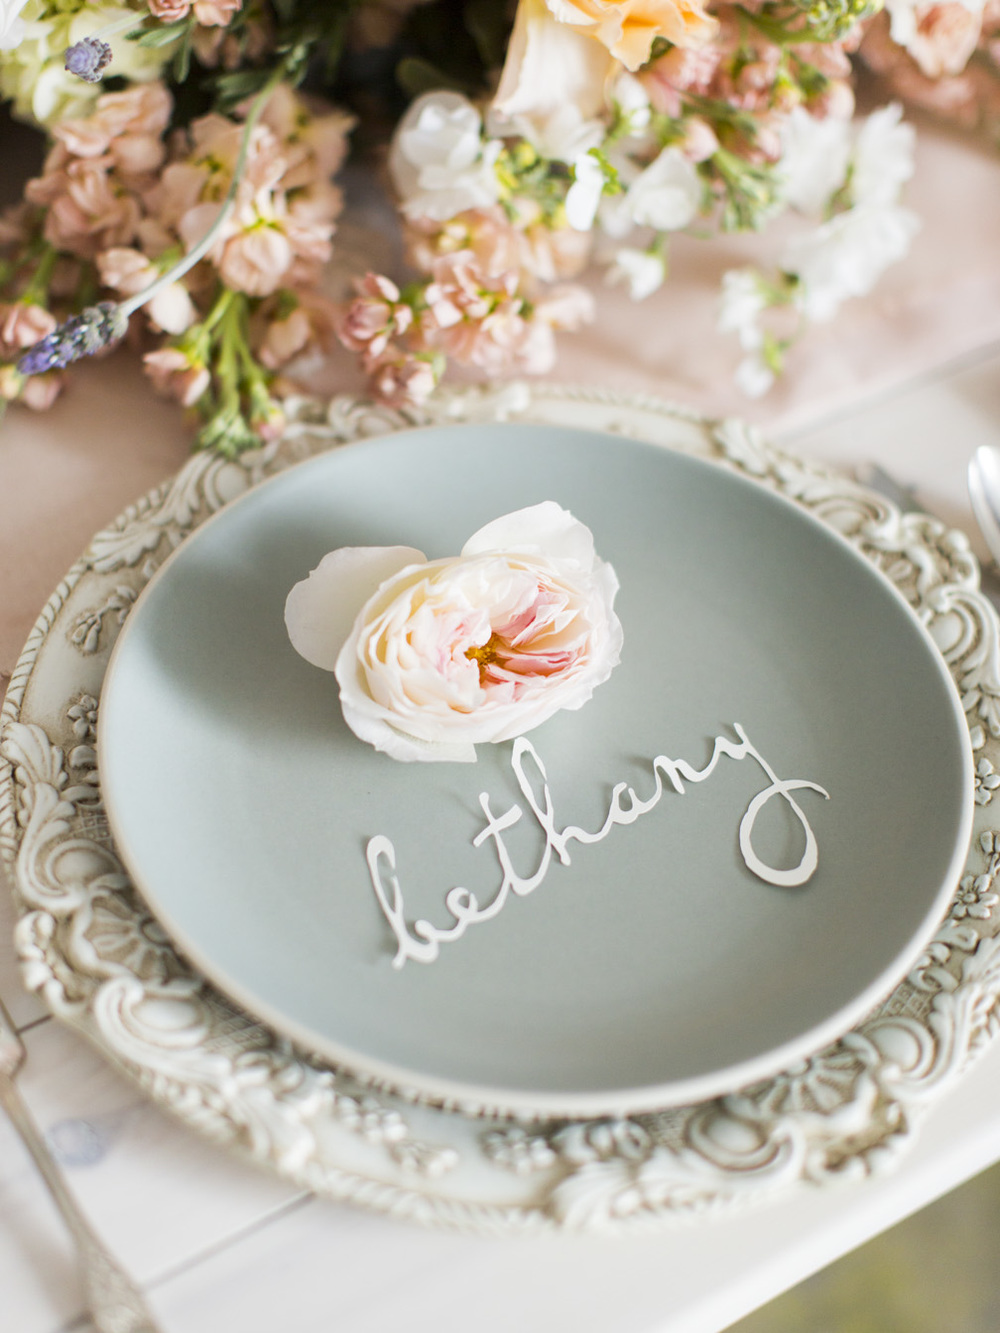 Monet Inspired Wedding Details | Utah Wedding Design by Michelle Leo Events | Jessica Peterson Photography